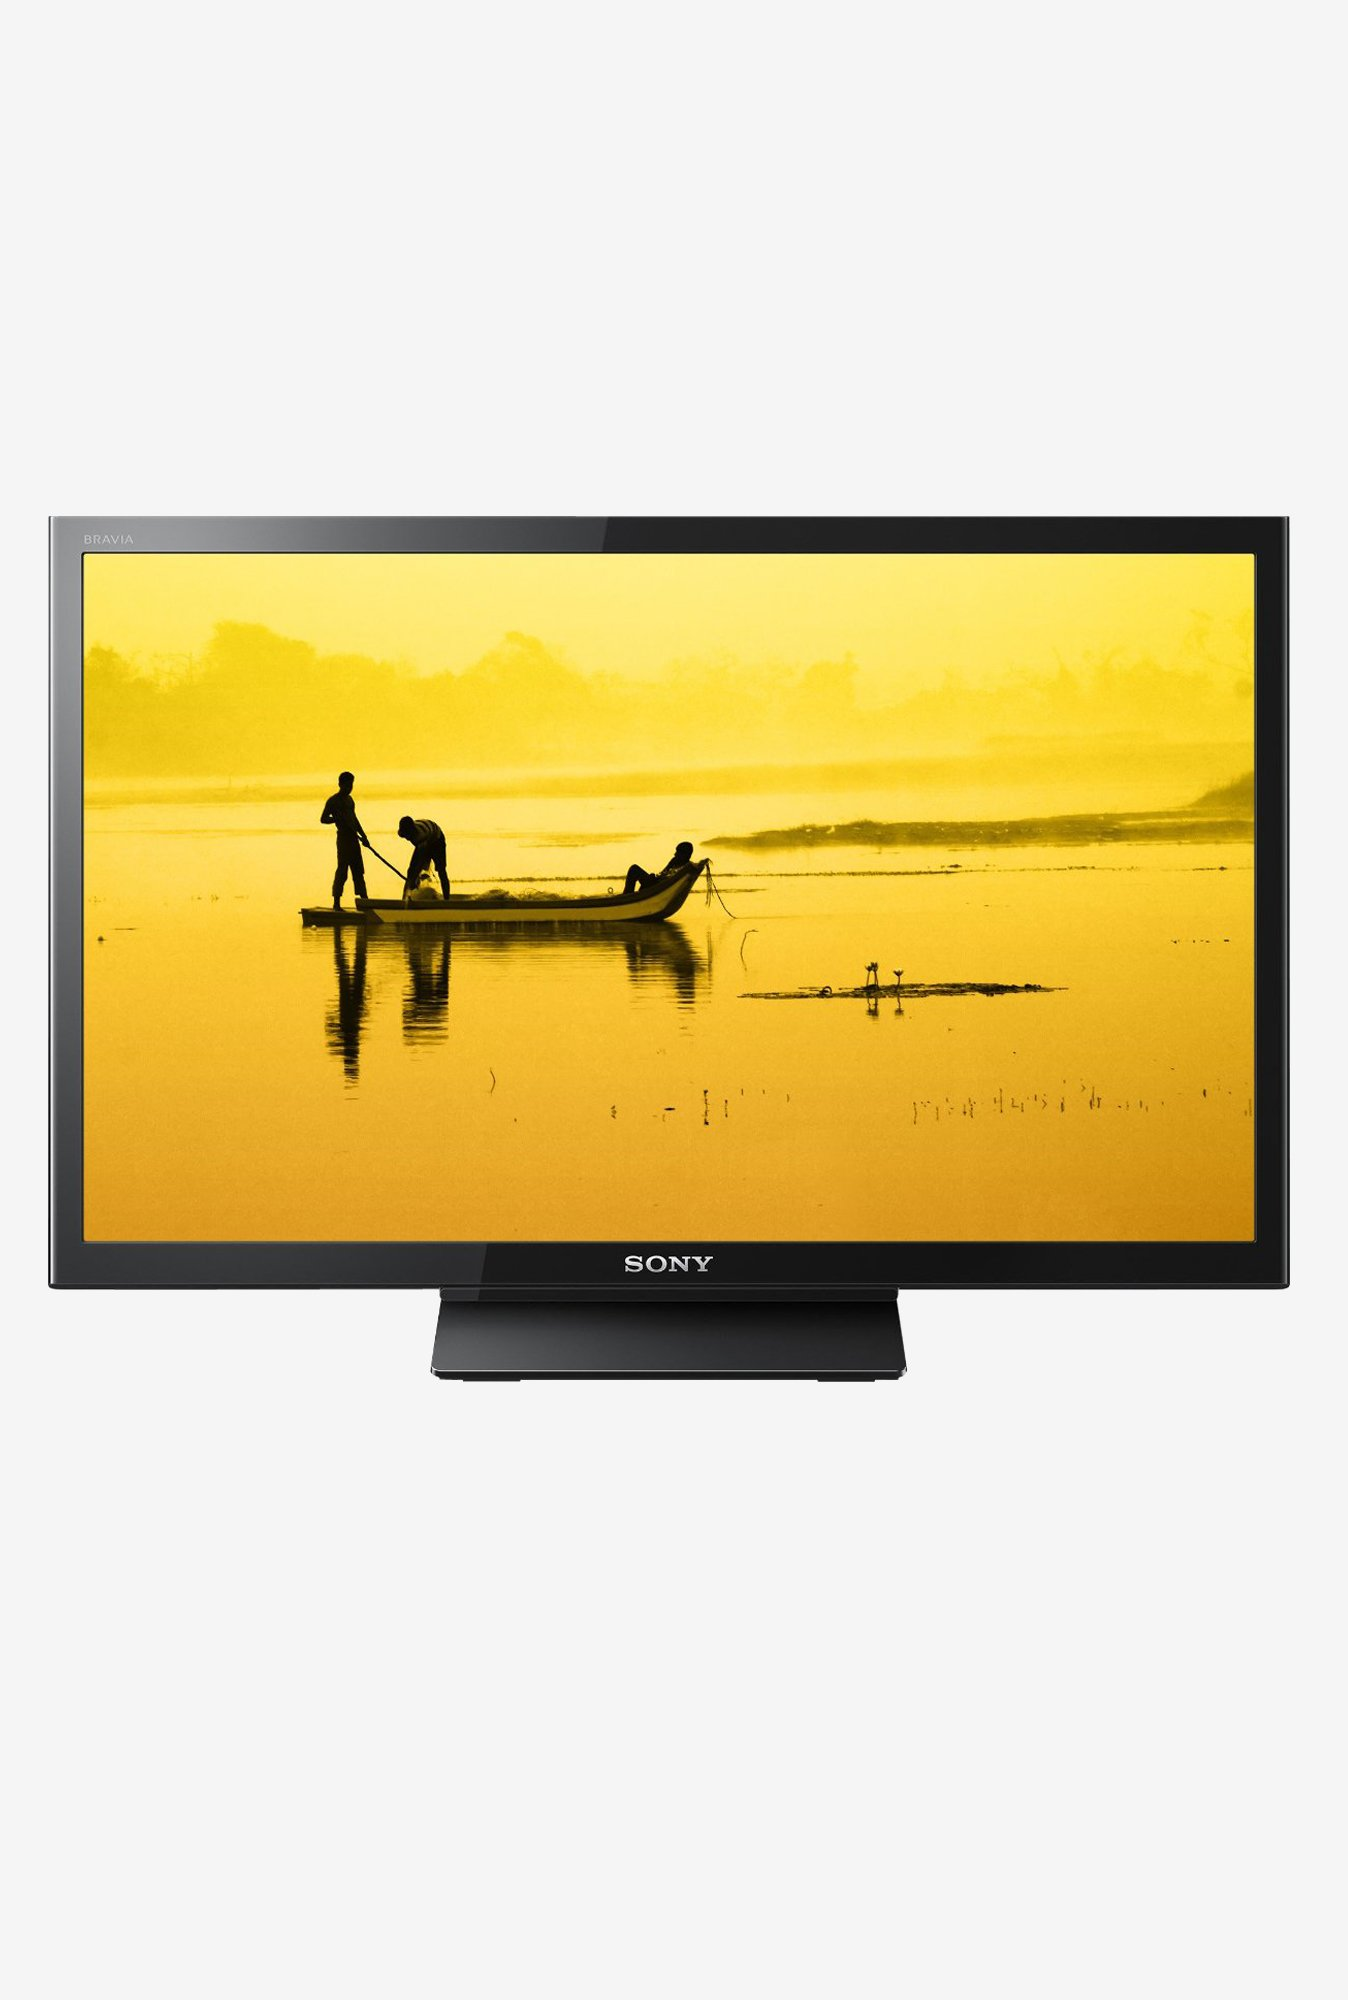 Sony BRAVIA KLV-22P413D 55 cm Full HD LED TV (Black)